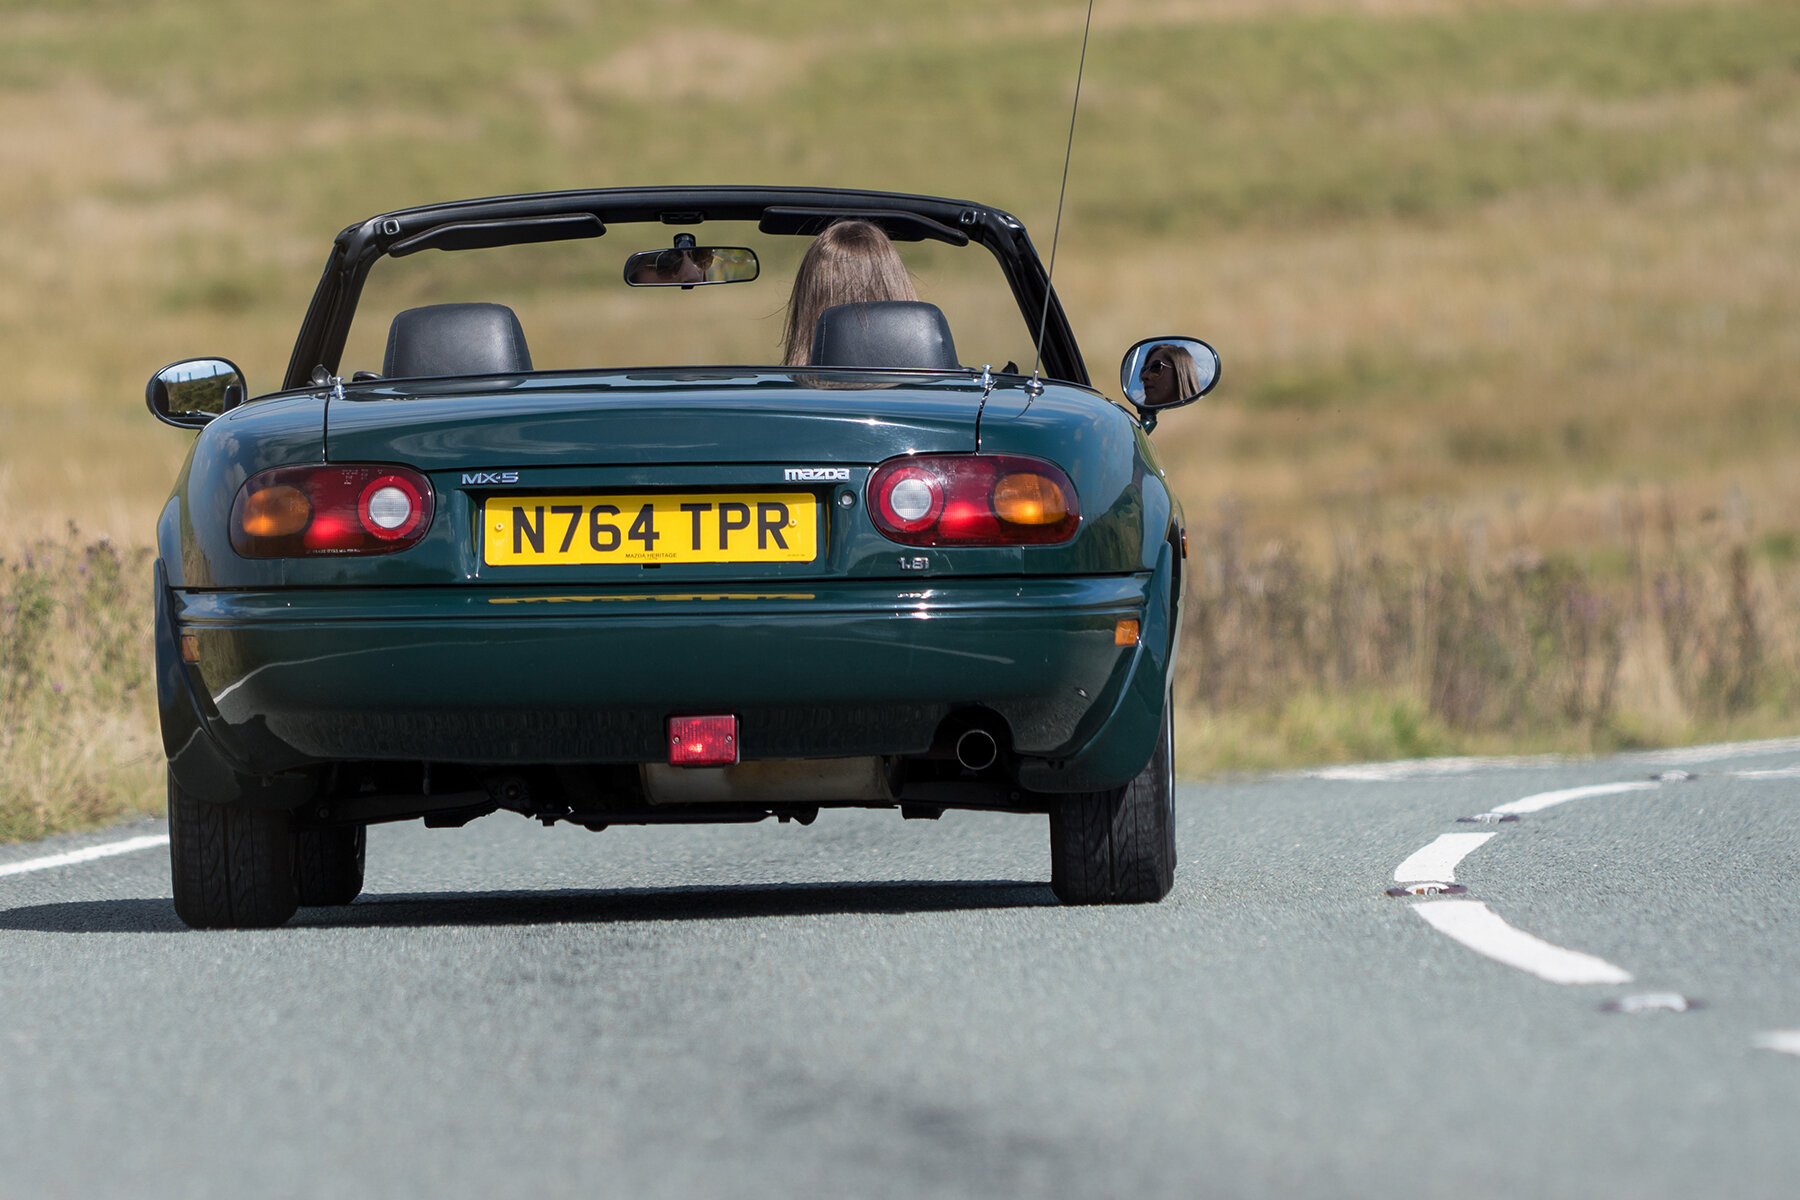 The view most people will see of a rapidly-driven MX-5 on a B-road